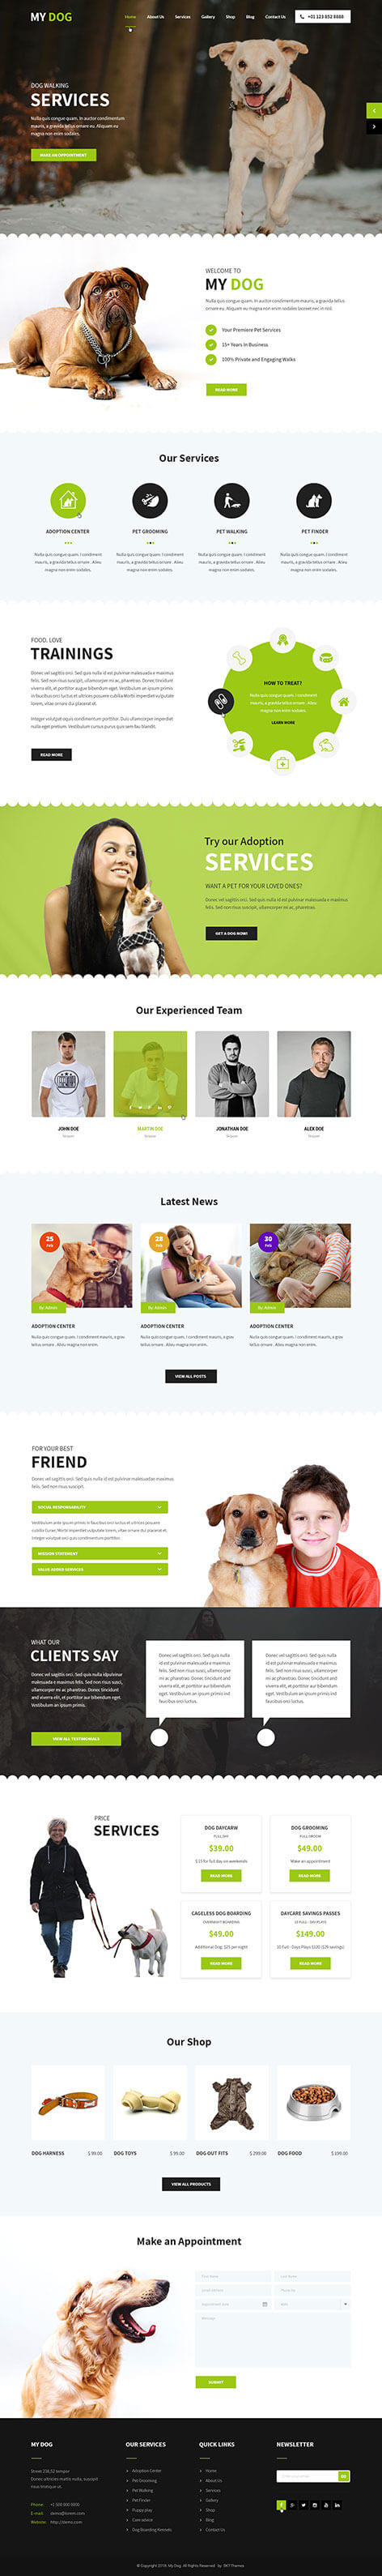 dog wordpress theme1 - My Dog